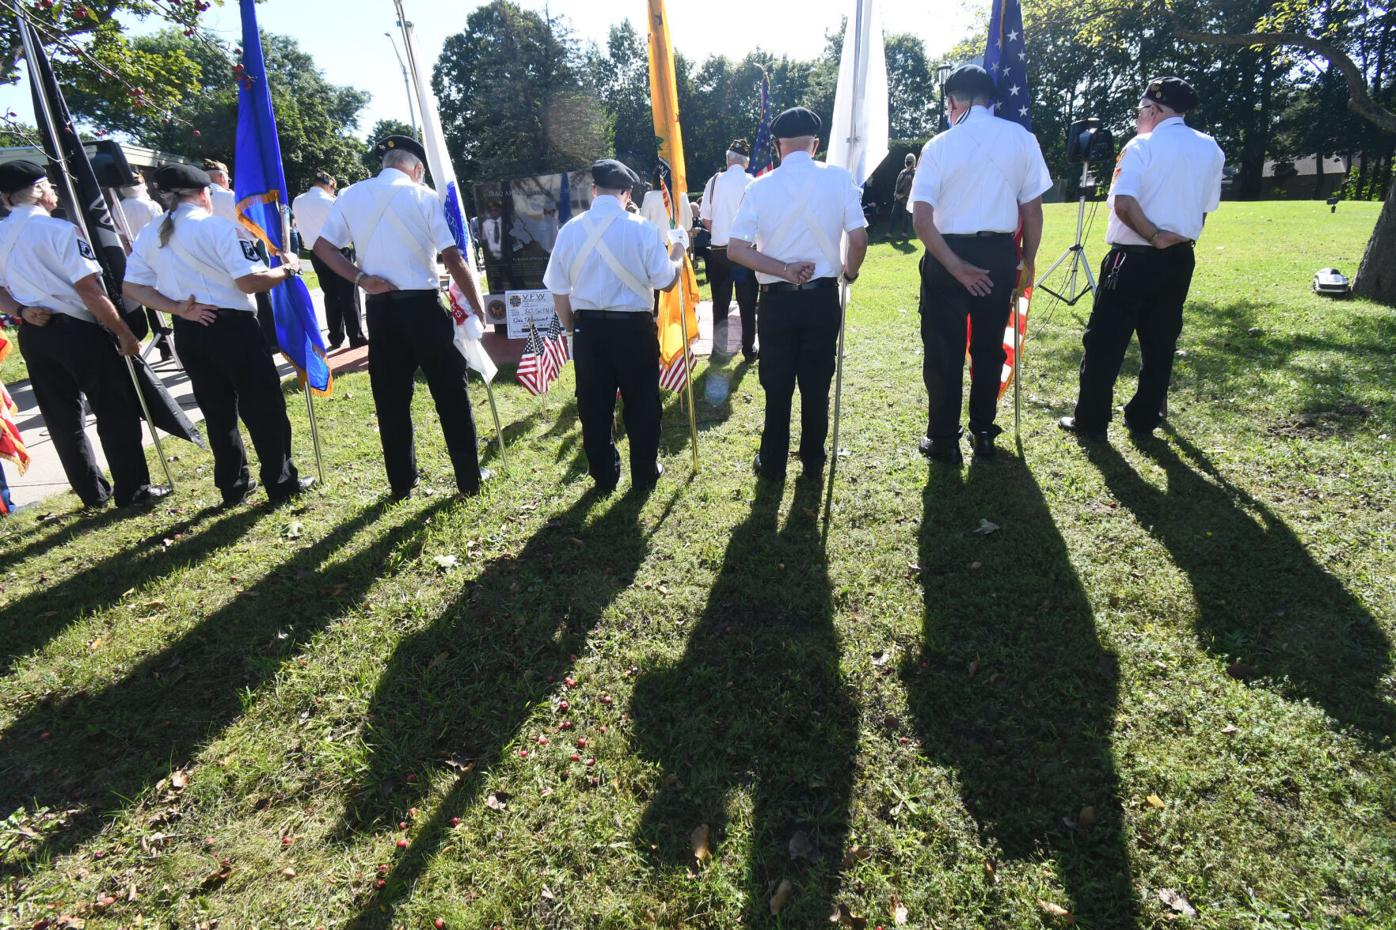 Shadows of the color guard